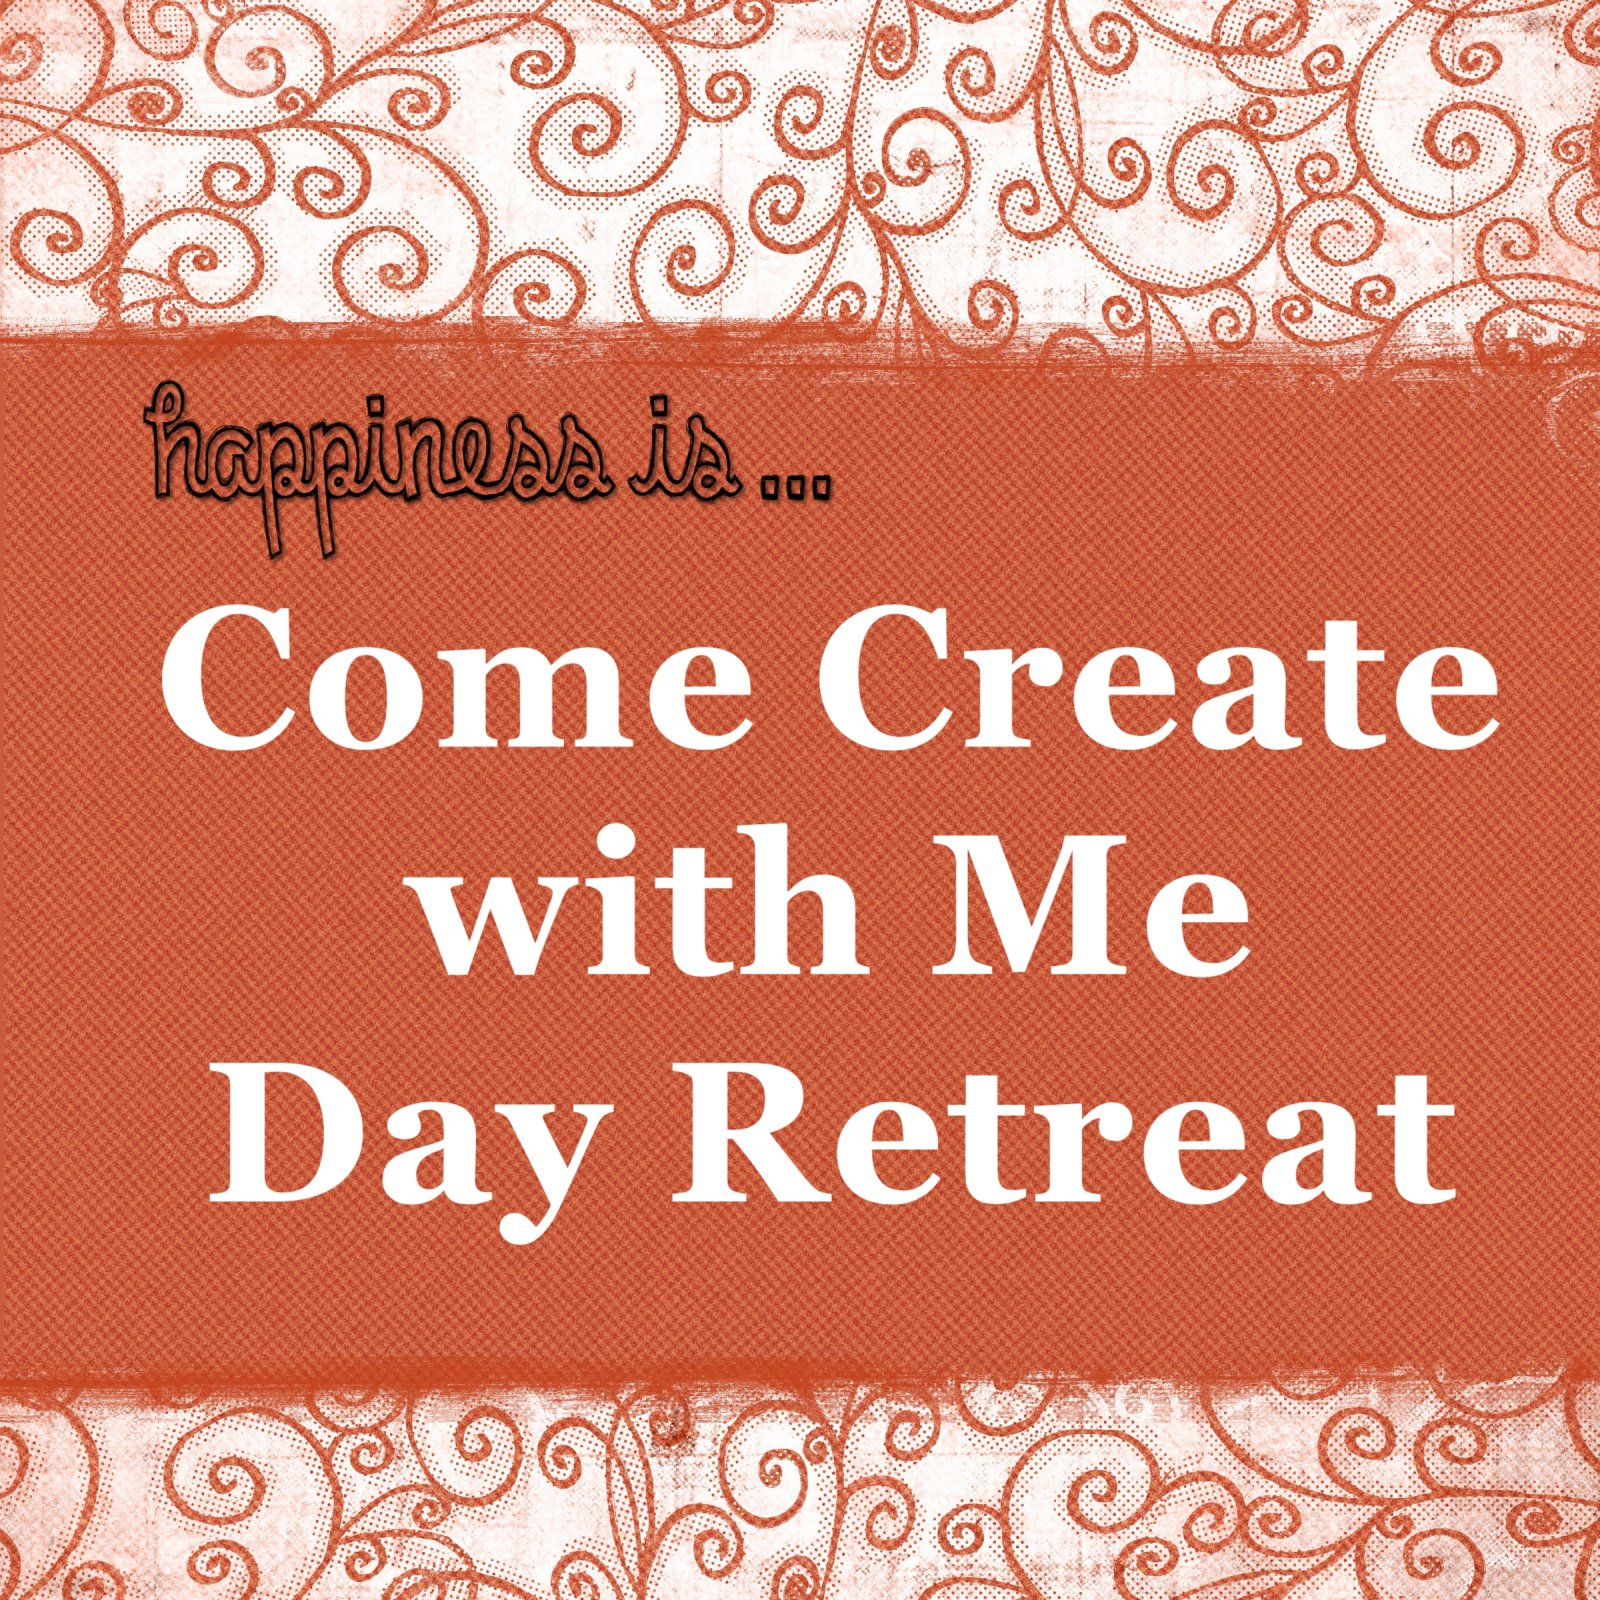 Come Create with Me Day Retreat--October 19, 2021